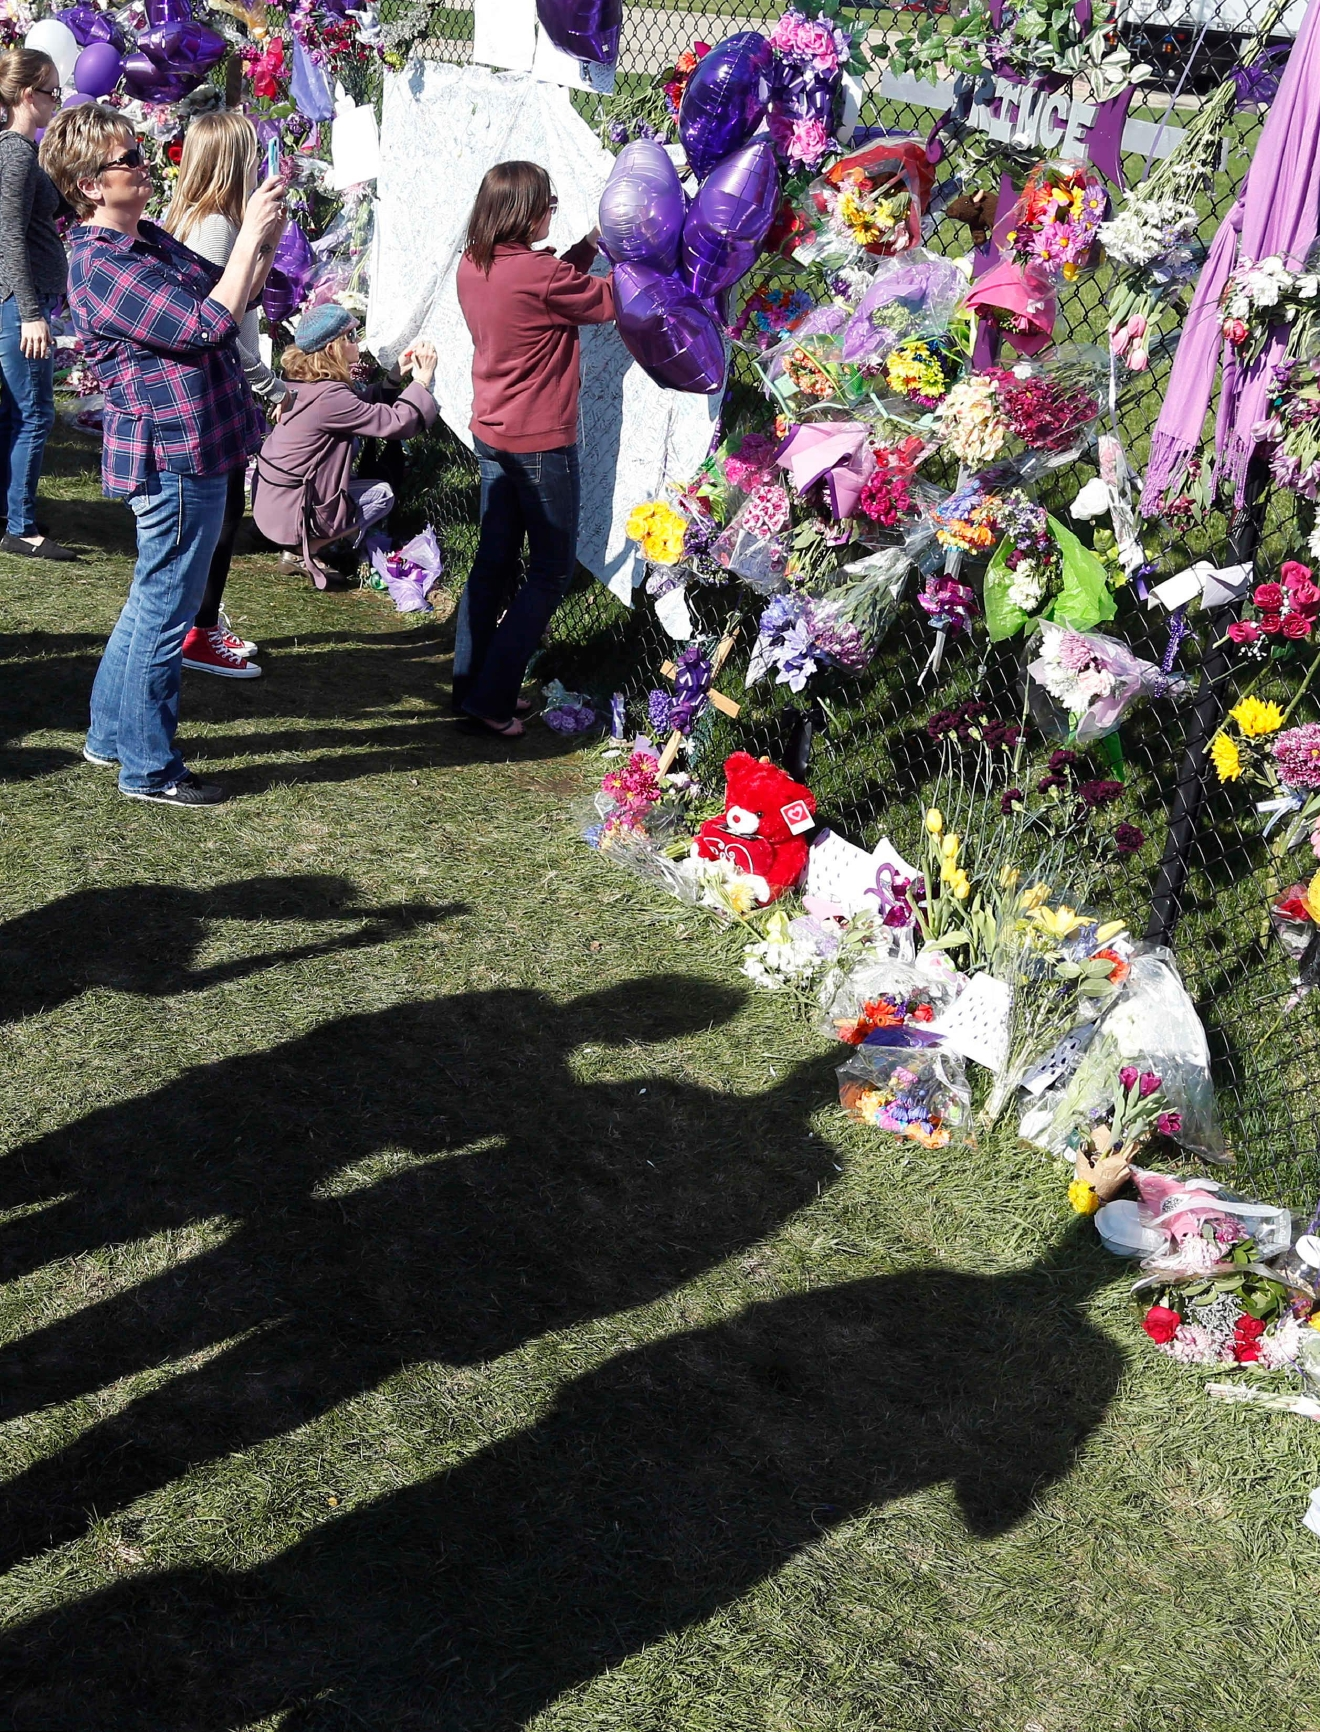 The shadows of fans mark the ground along the memorial fence path in memory of pop superstar Prince at Paisley Park Studios, Friday, April 22, 2016 in Chanhassen, Minn. Prince died Thursday at Paisley Park at the age of 57. (AP Photo/Jim Mone)